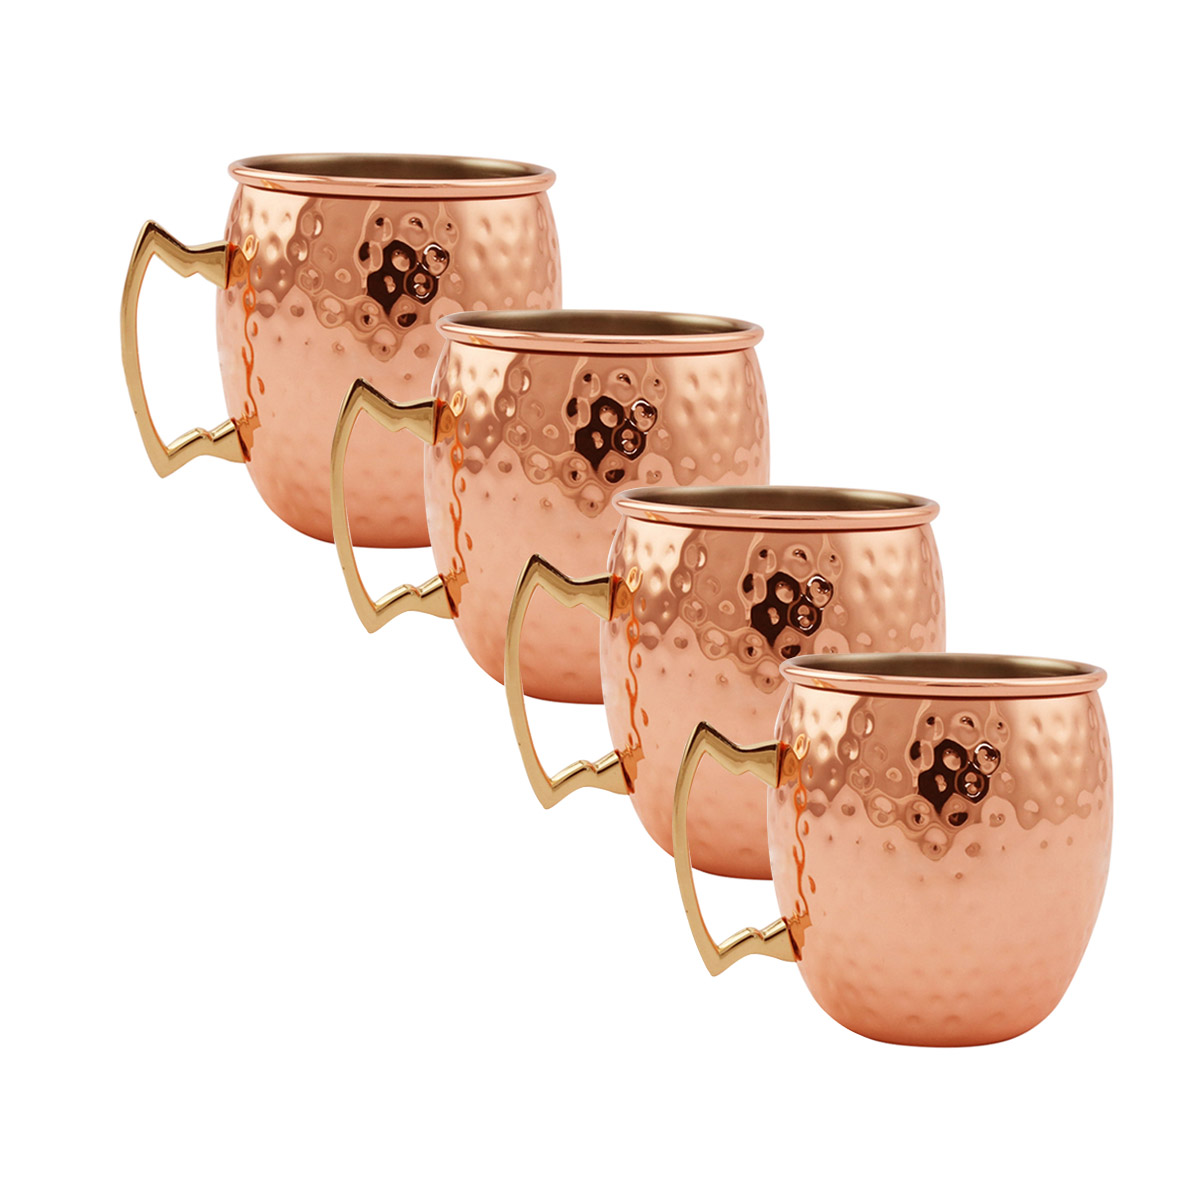 19 oz Stainless Steel Cups Set of 2 Hammered Moscow Mule Mug Rose Gold Hammered-type